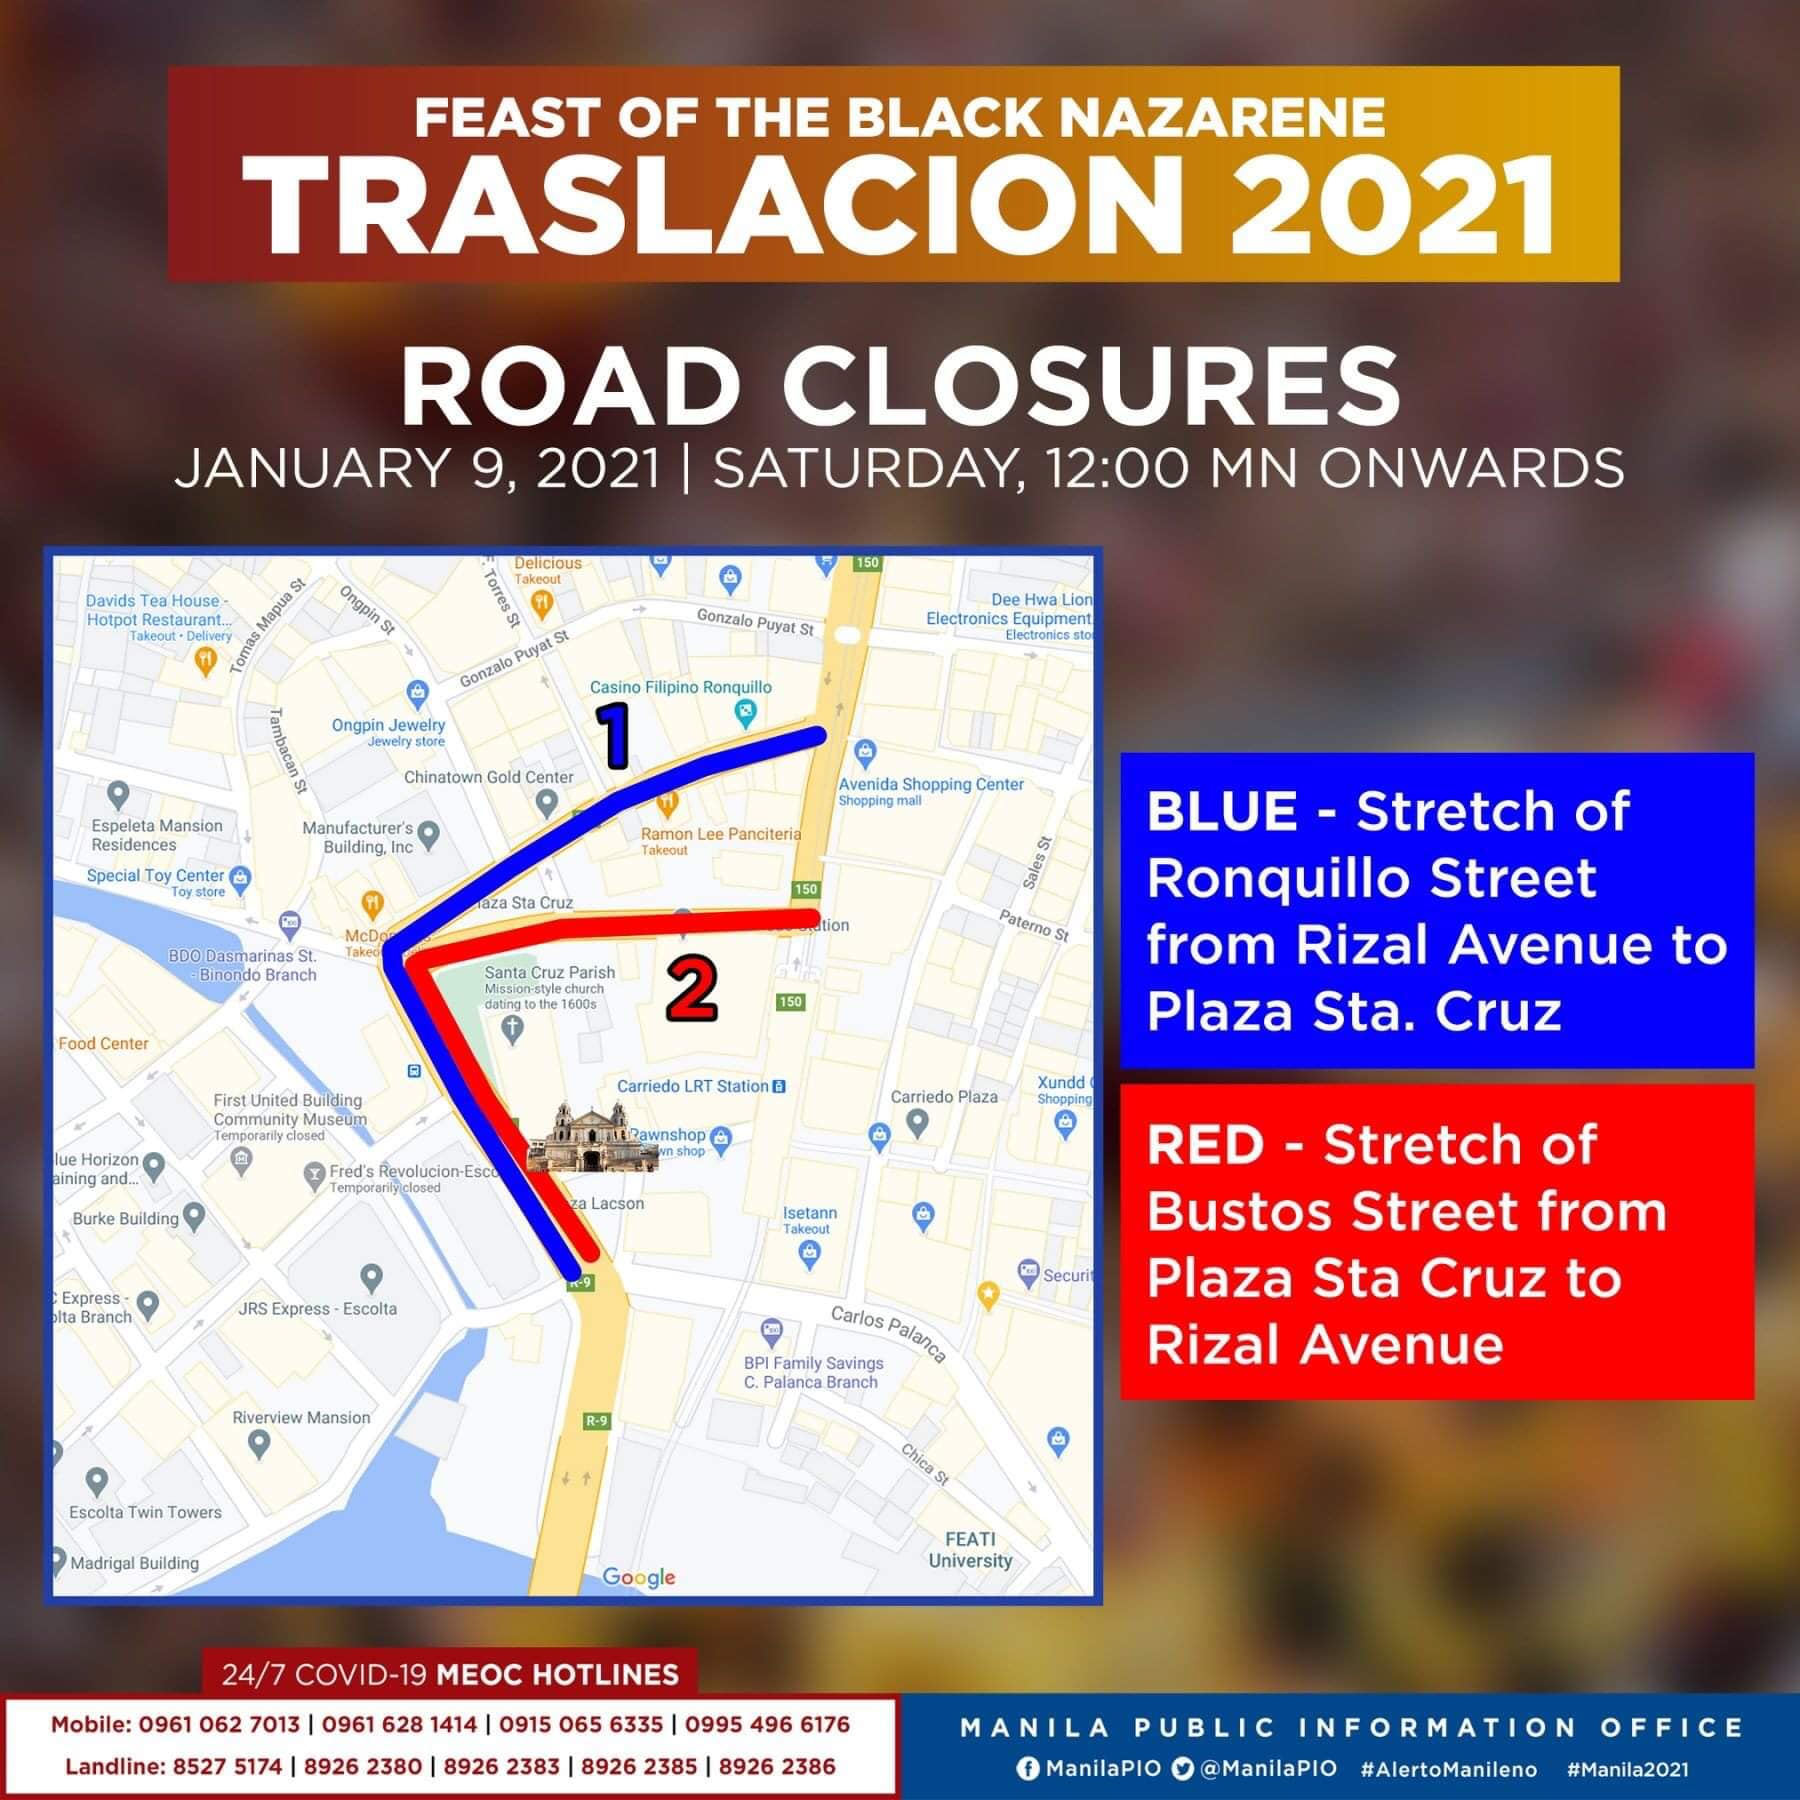 Traslacion Road closures on January 9, 2021 (12am onwards) - Ronquillo St from Rizal Avenue to Plaza Sta. Cruz; Bustos St. from Plaza Sta. Cruz to Rizal Ave.